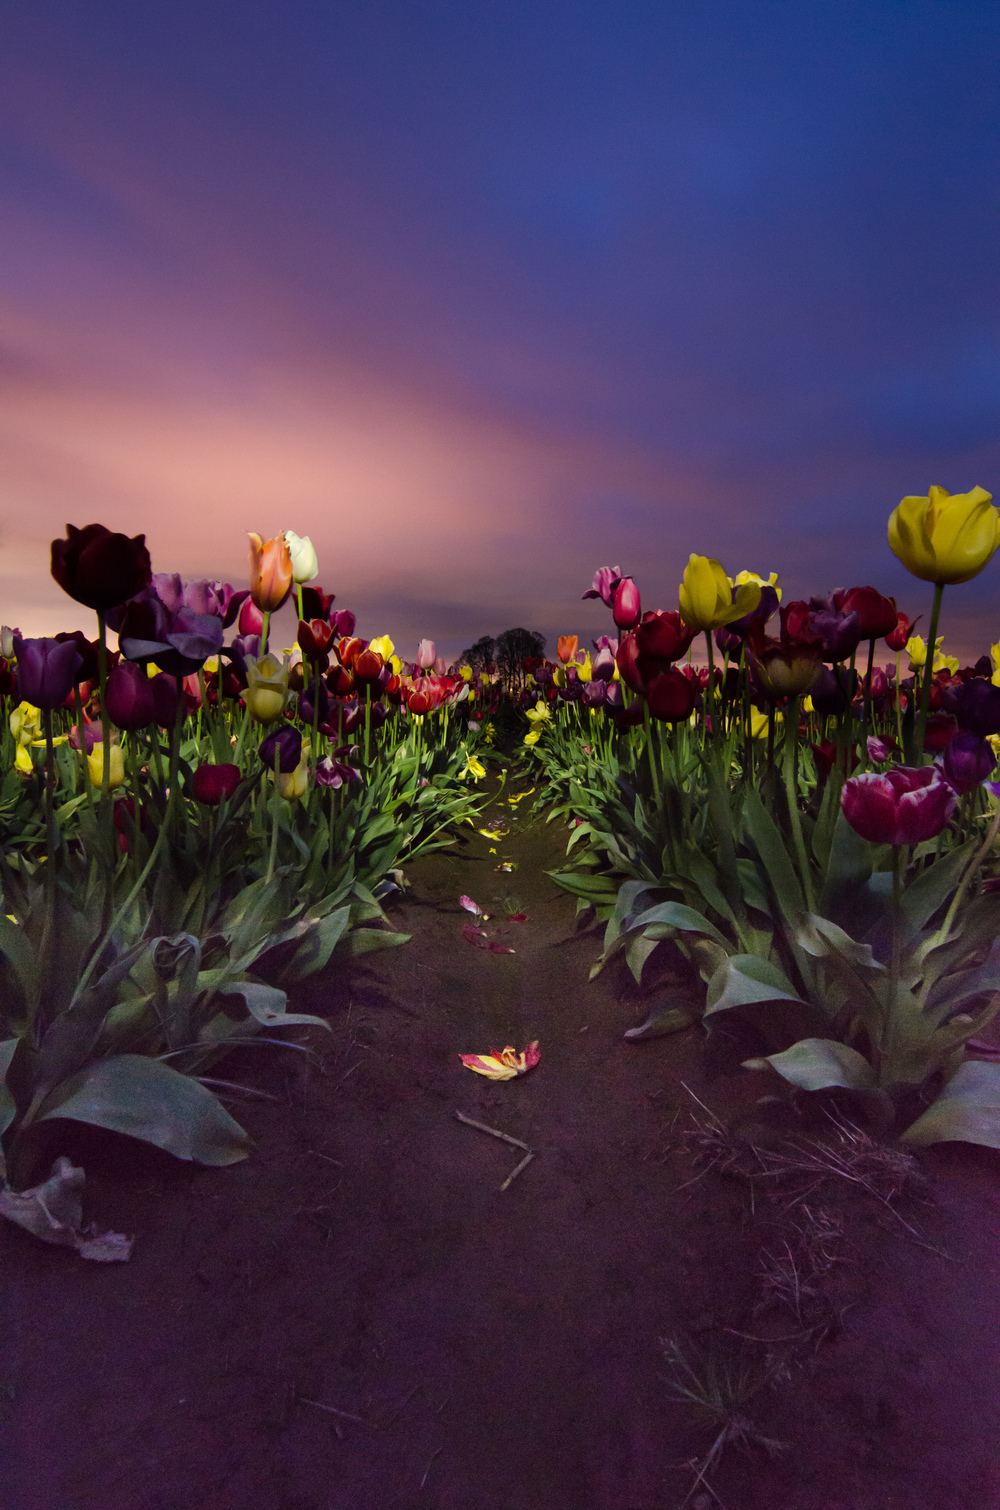 A second shot before sunrise from a ground level perspective looking between two rows of tulips. Some Light painting was used via a flashlight to help lightup the flowers.